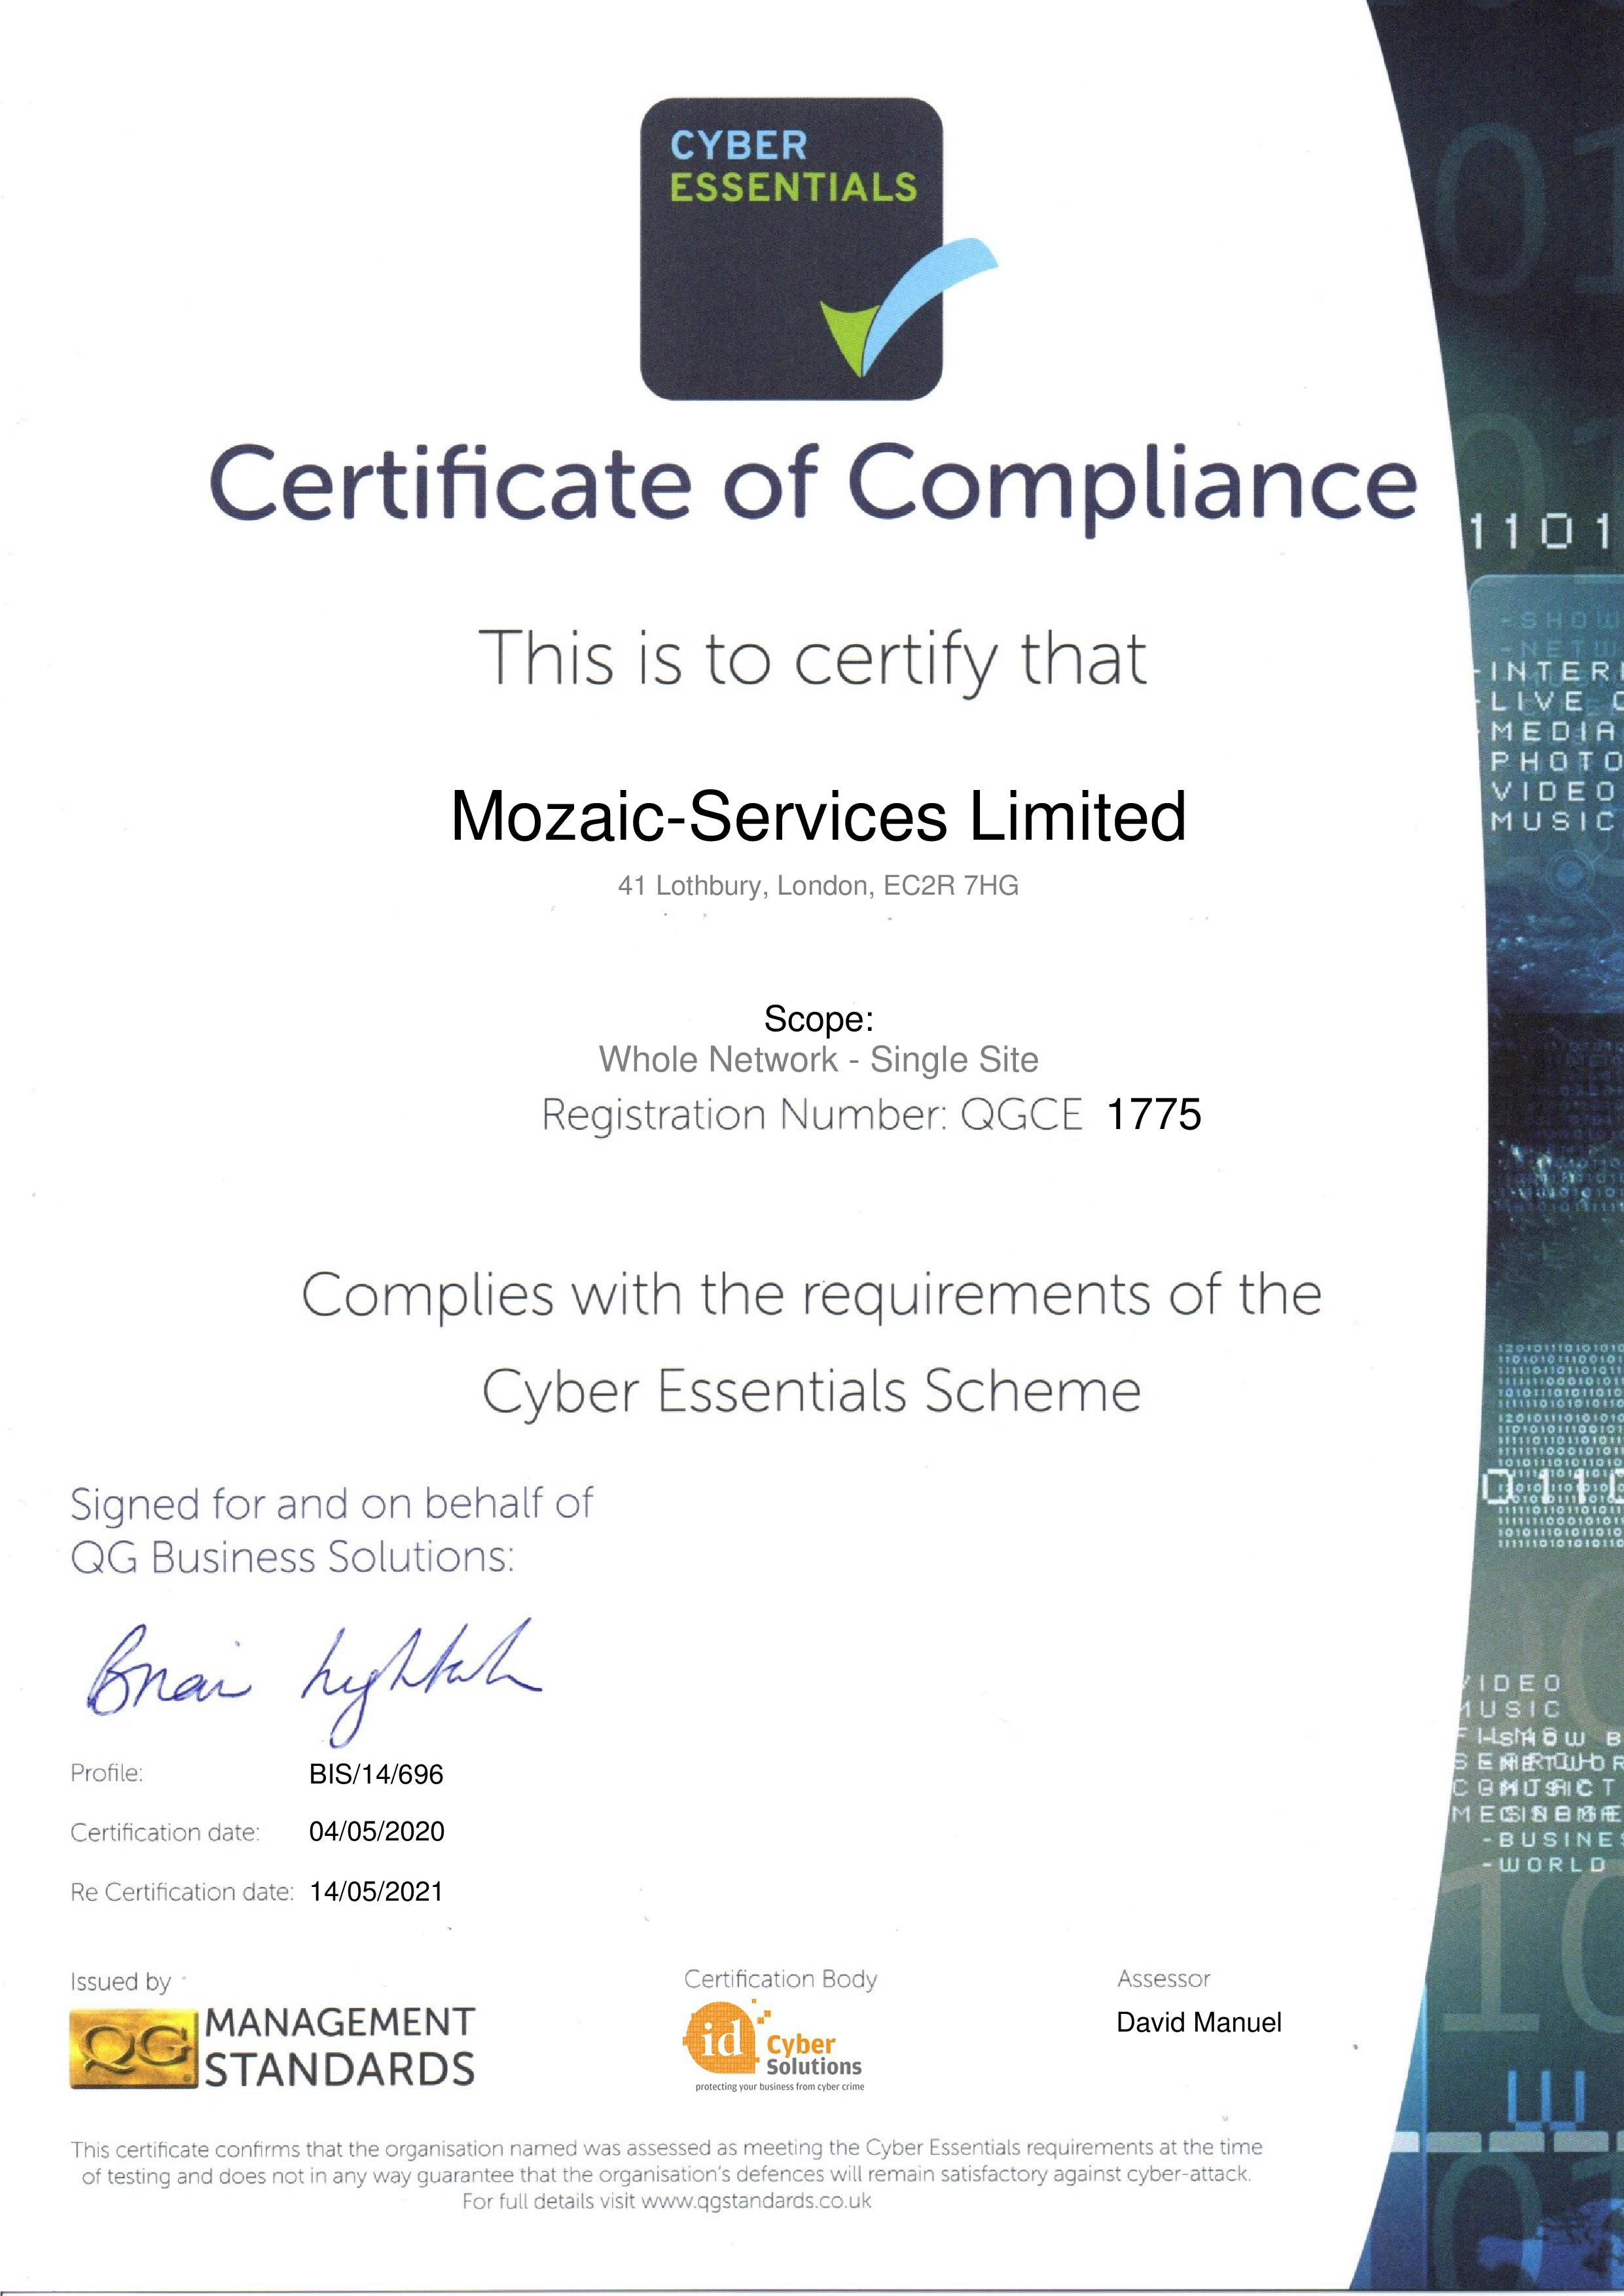 QGCE1775 Mozaic-Services Limited